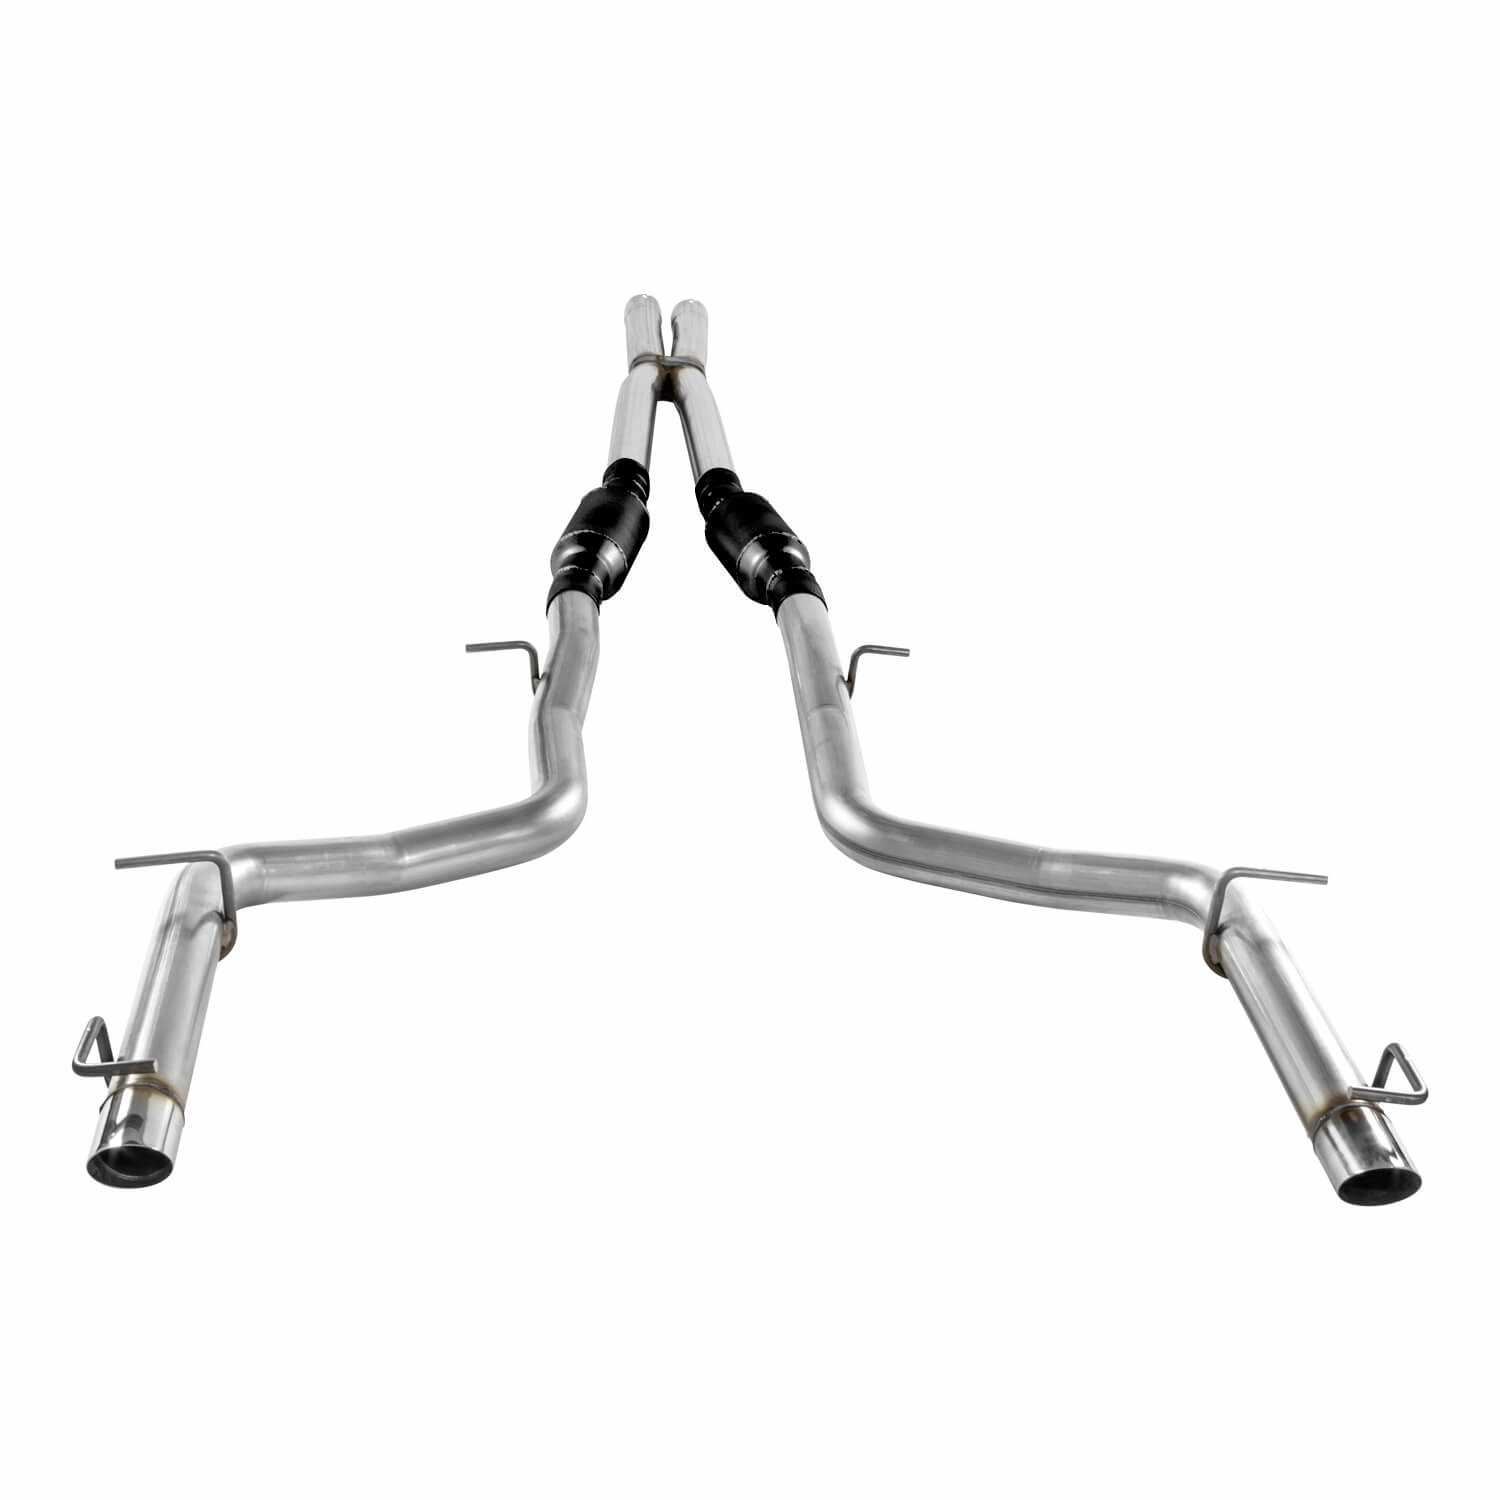 817774 Flowmaster Outlaw Series™ Cat Back Exhaust System